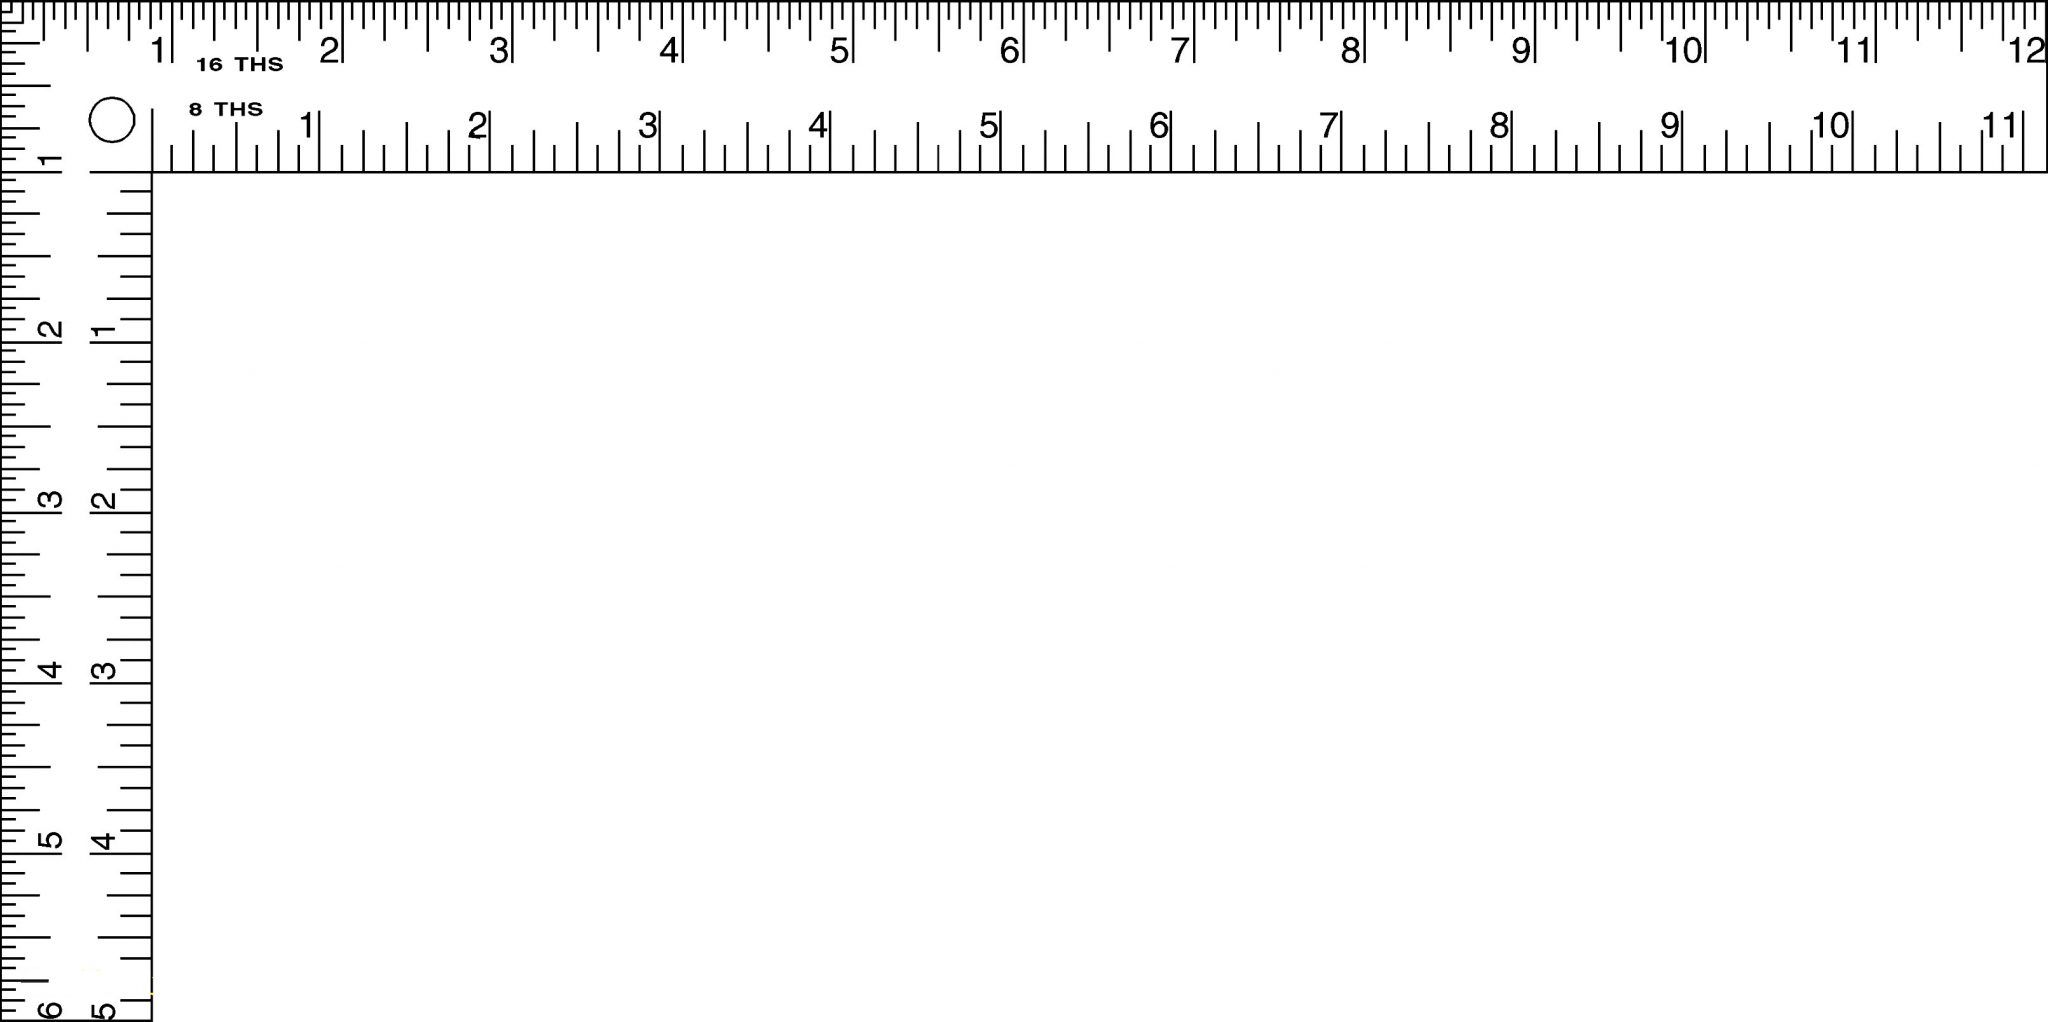 6 12 Inch Ruler Actual Size Printable Ruler Lettering Ruler